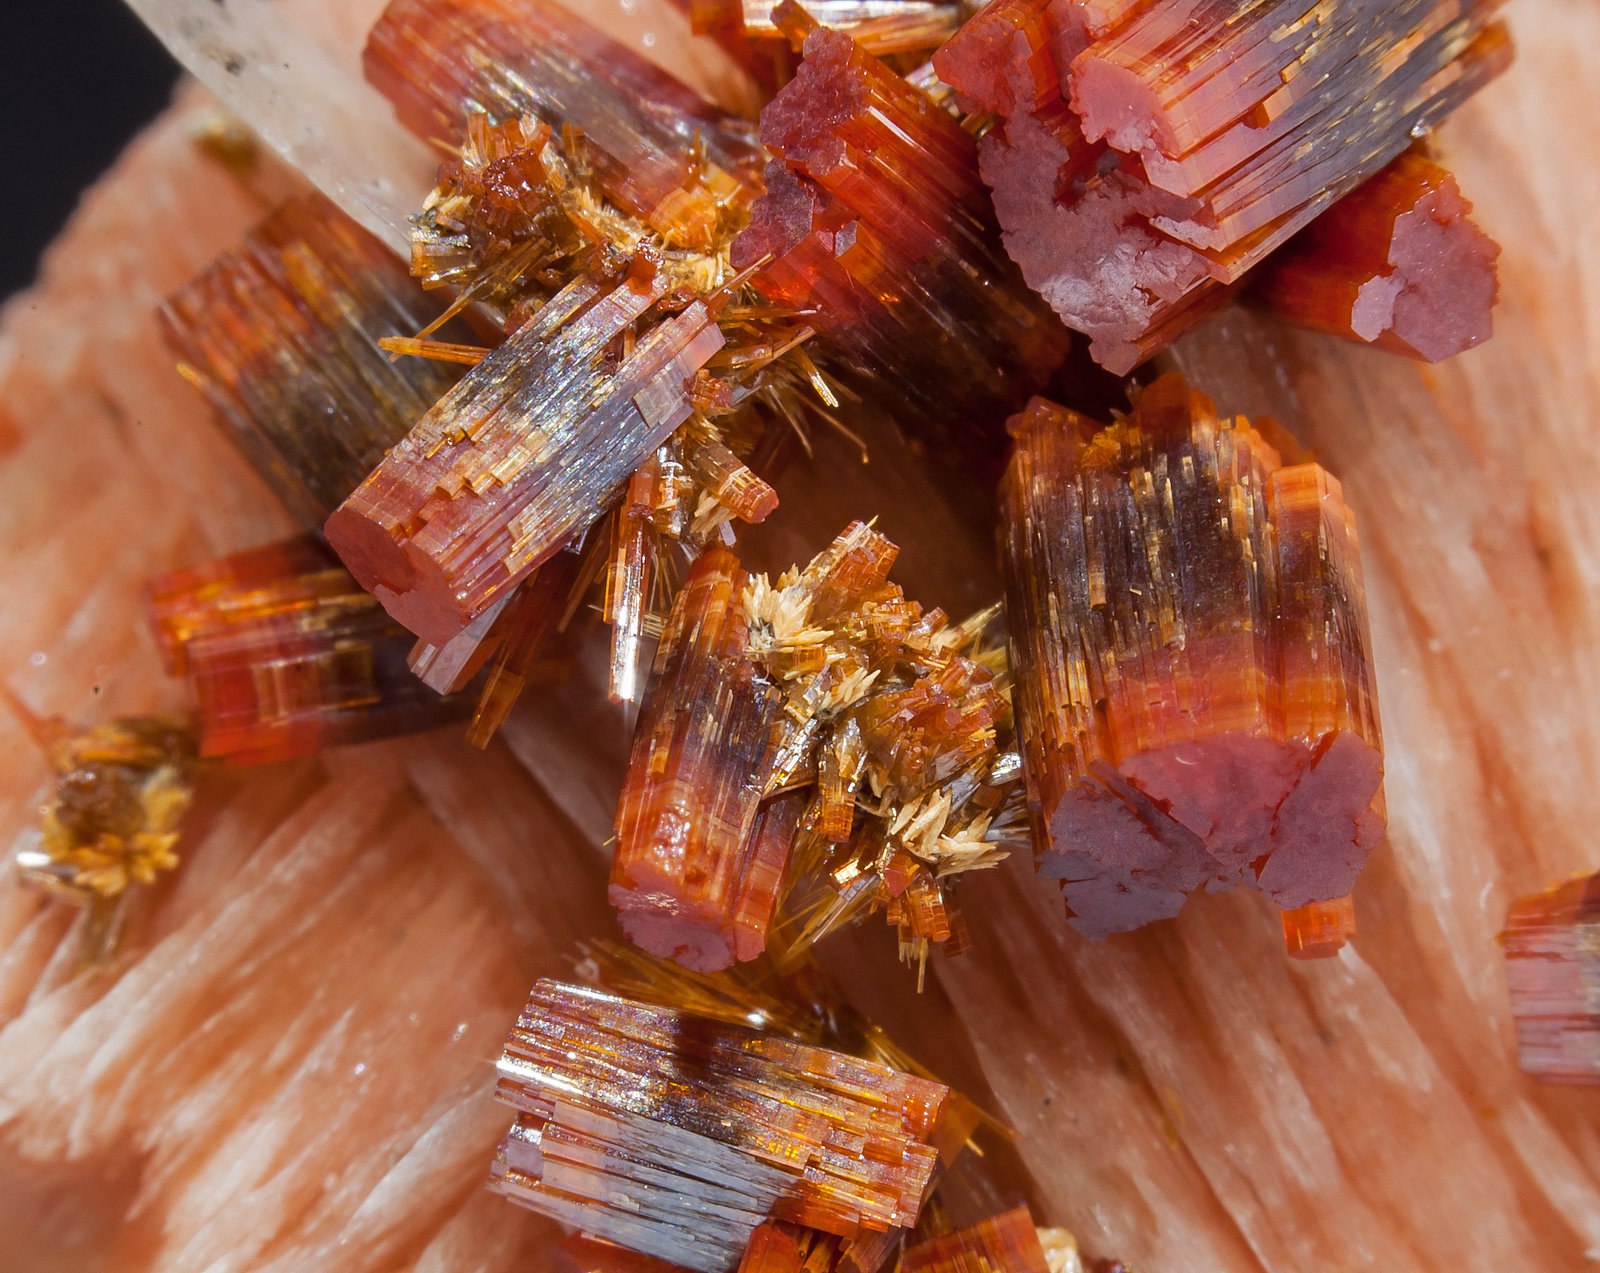 specimens/s_imagesAM2/Vanadinite-EC13AM2d.jpg